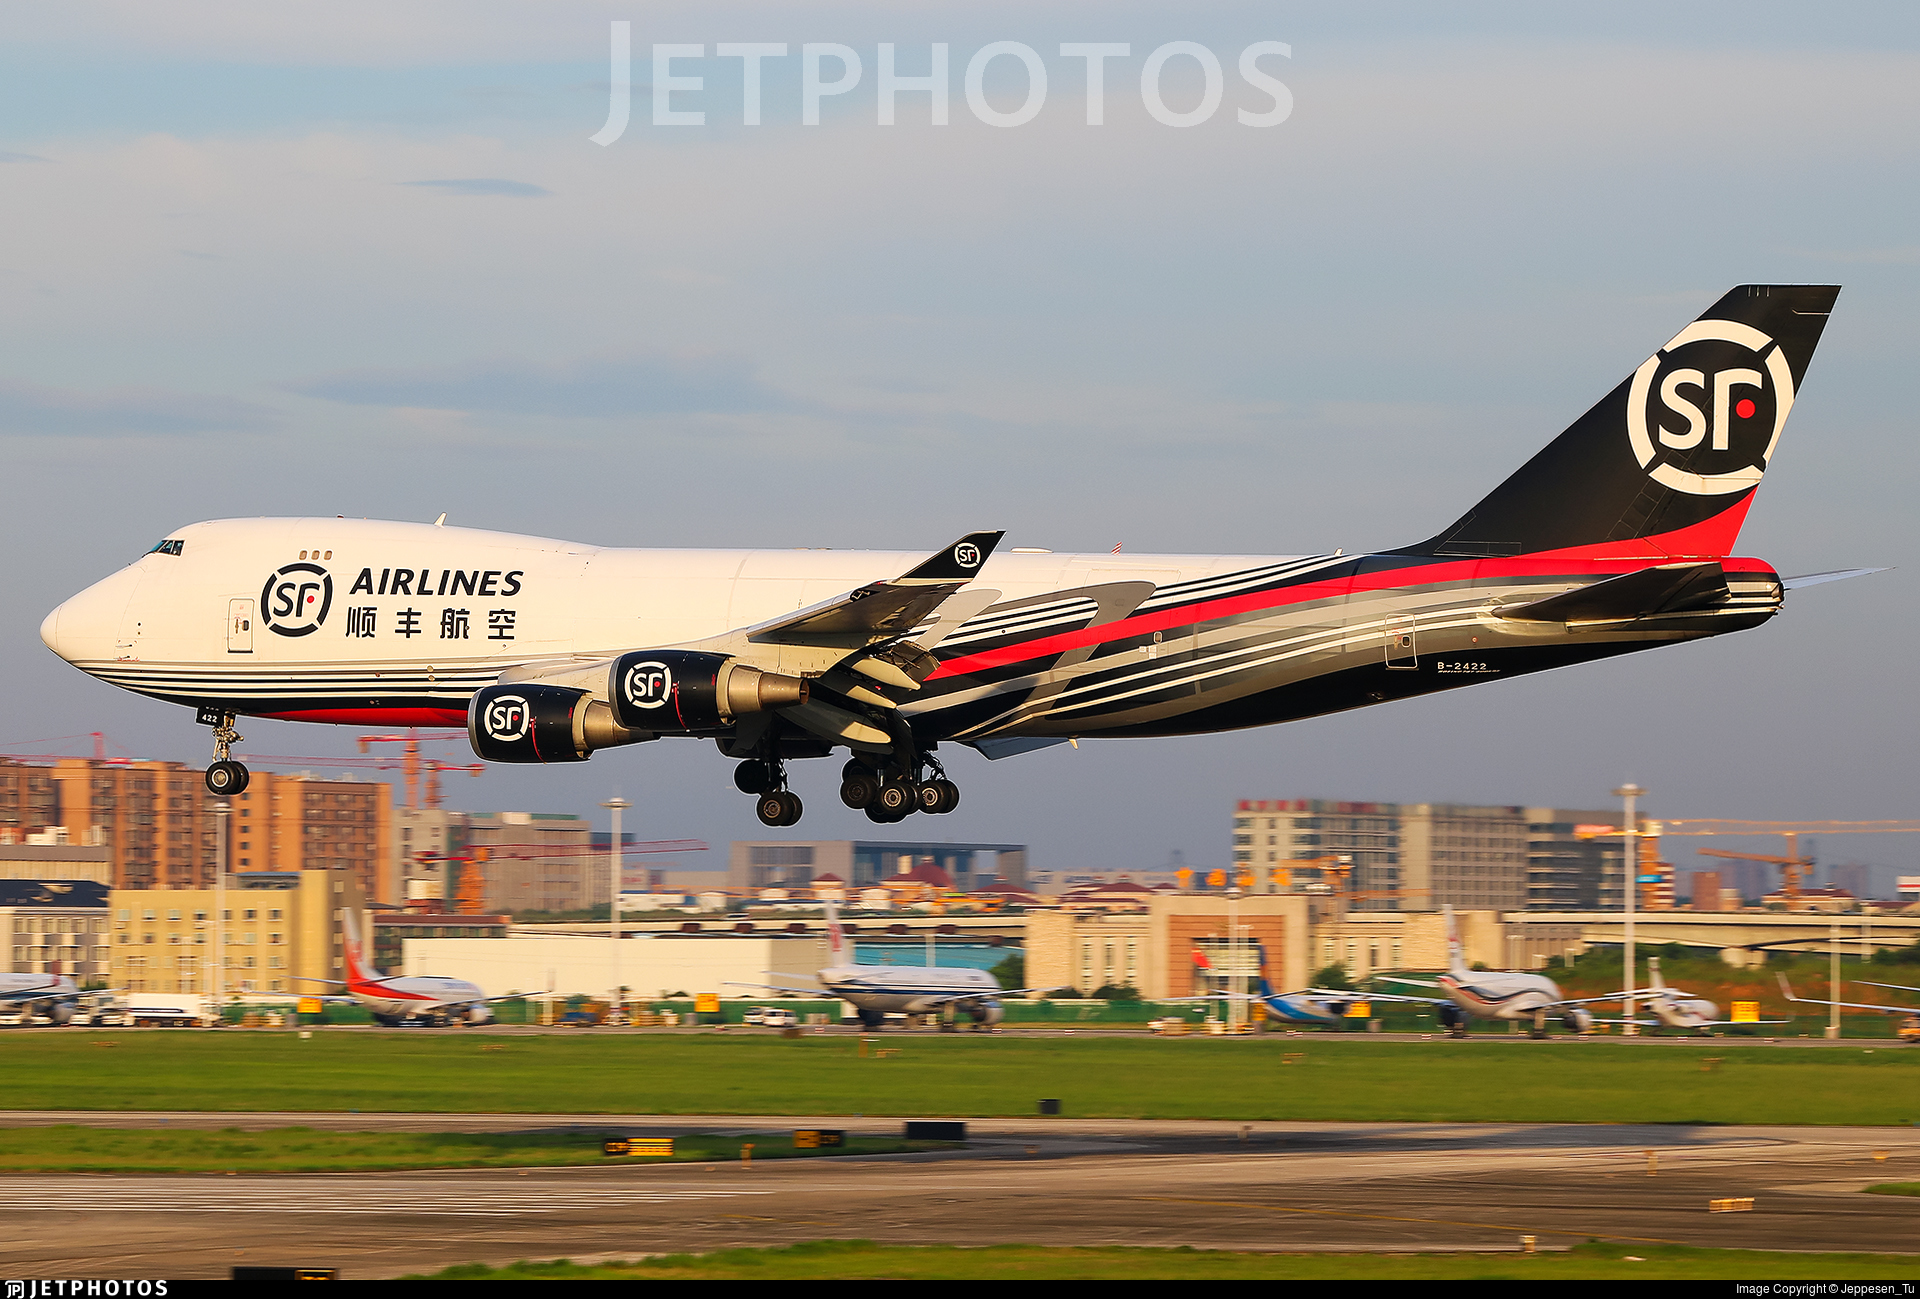 B-2422 - Boeing 747-4EVERF - SF Airlines